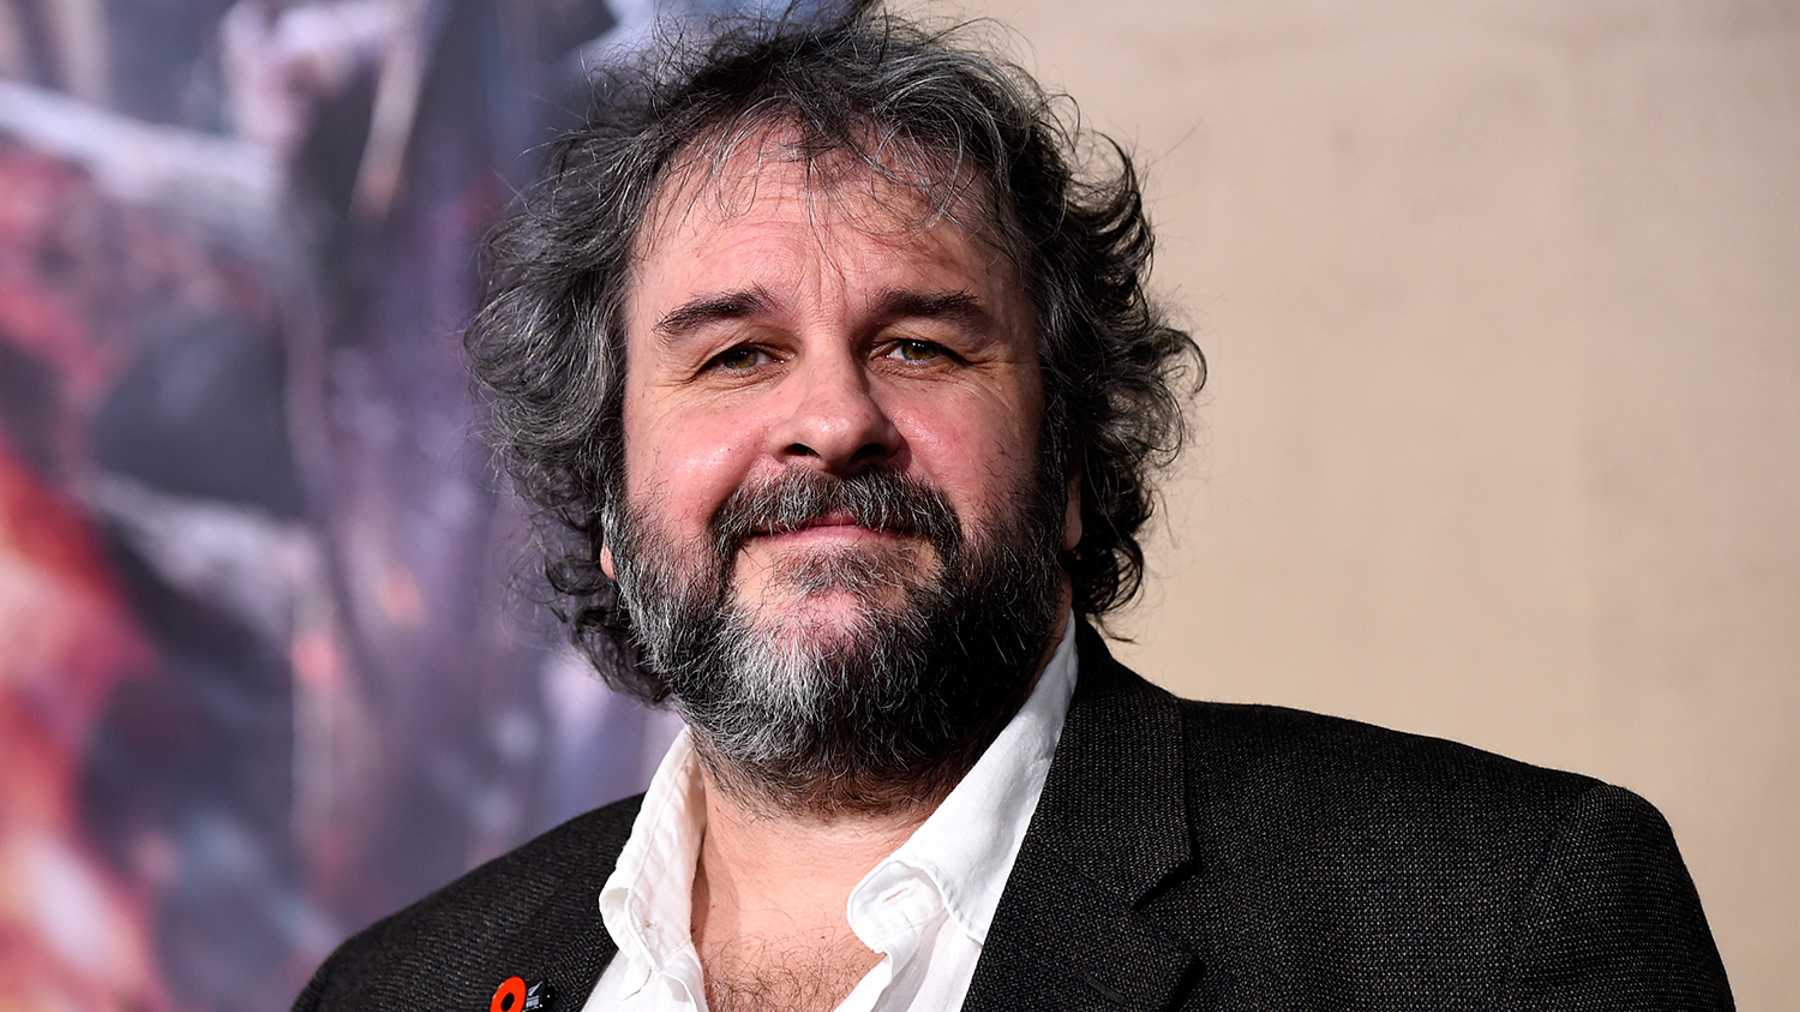 Peter Jackson's filmography